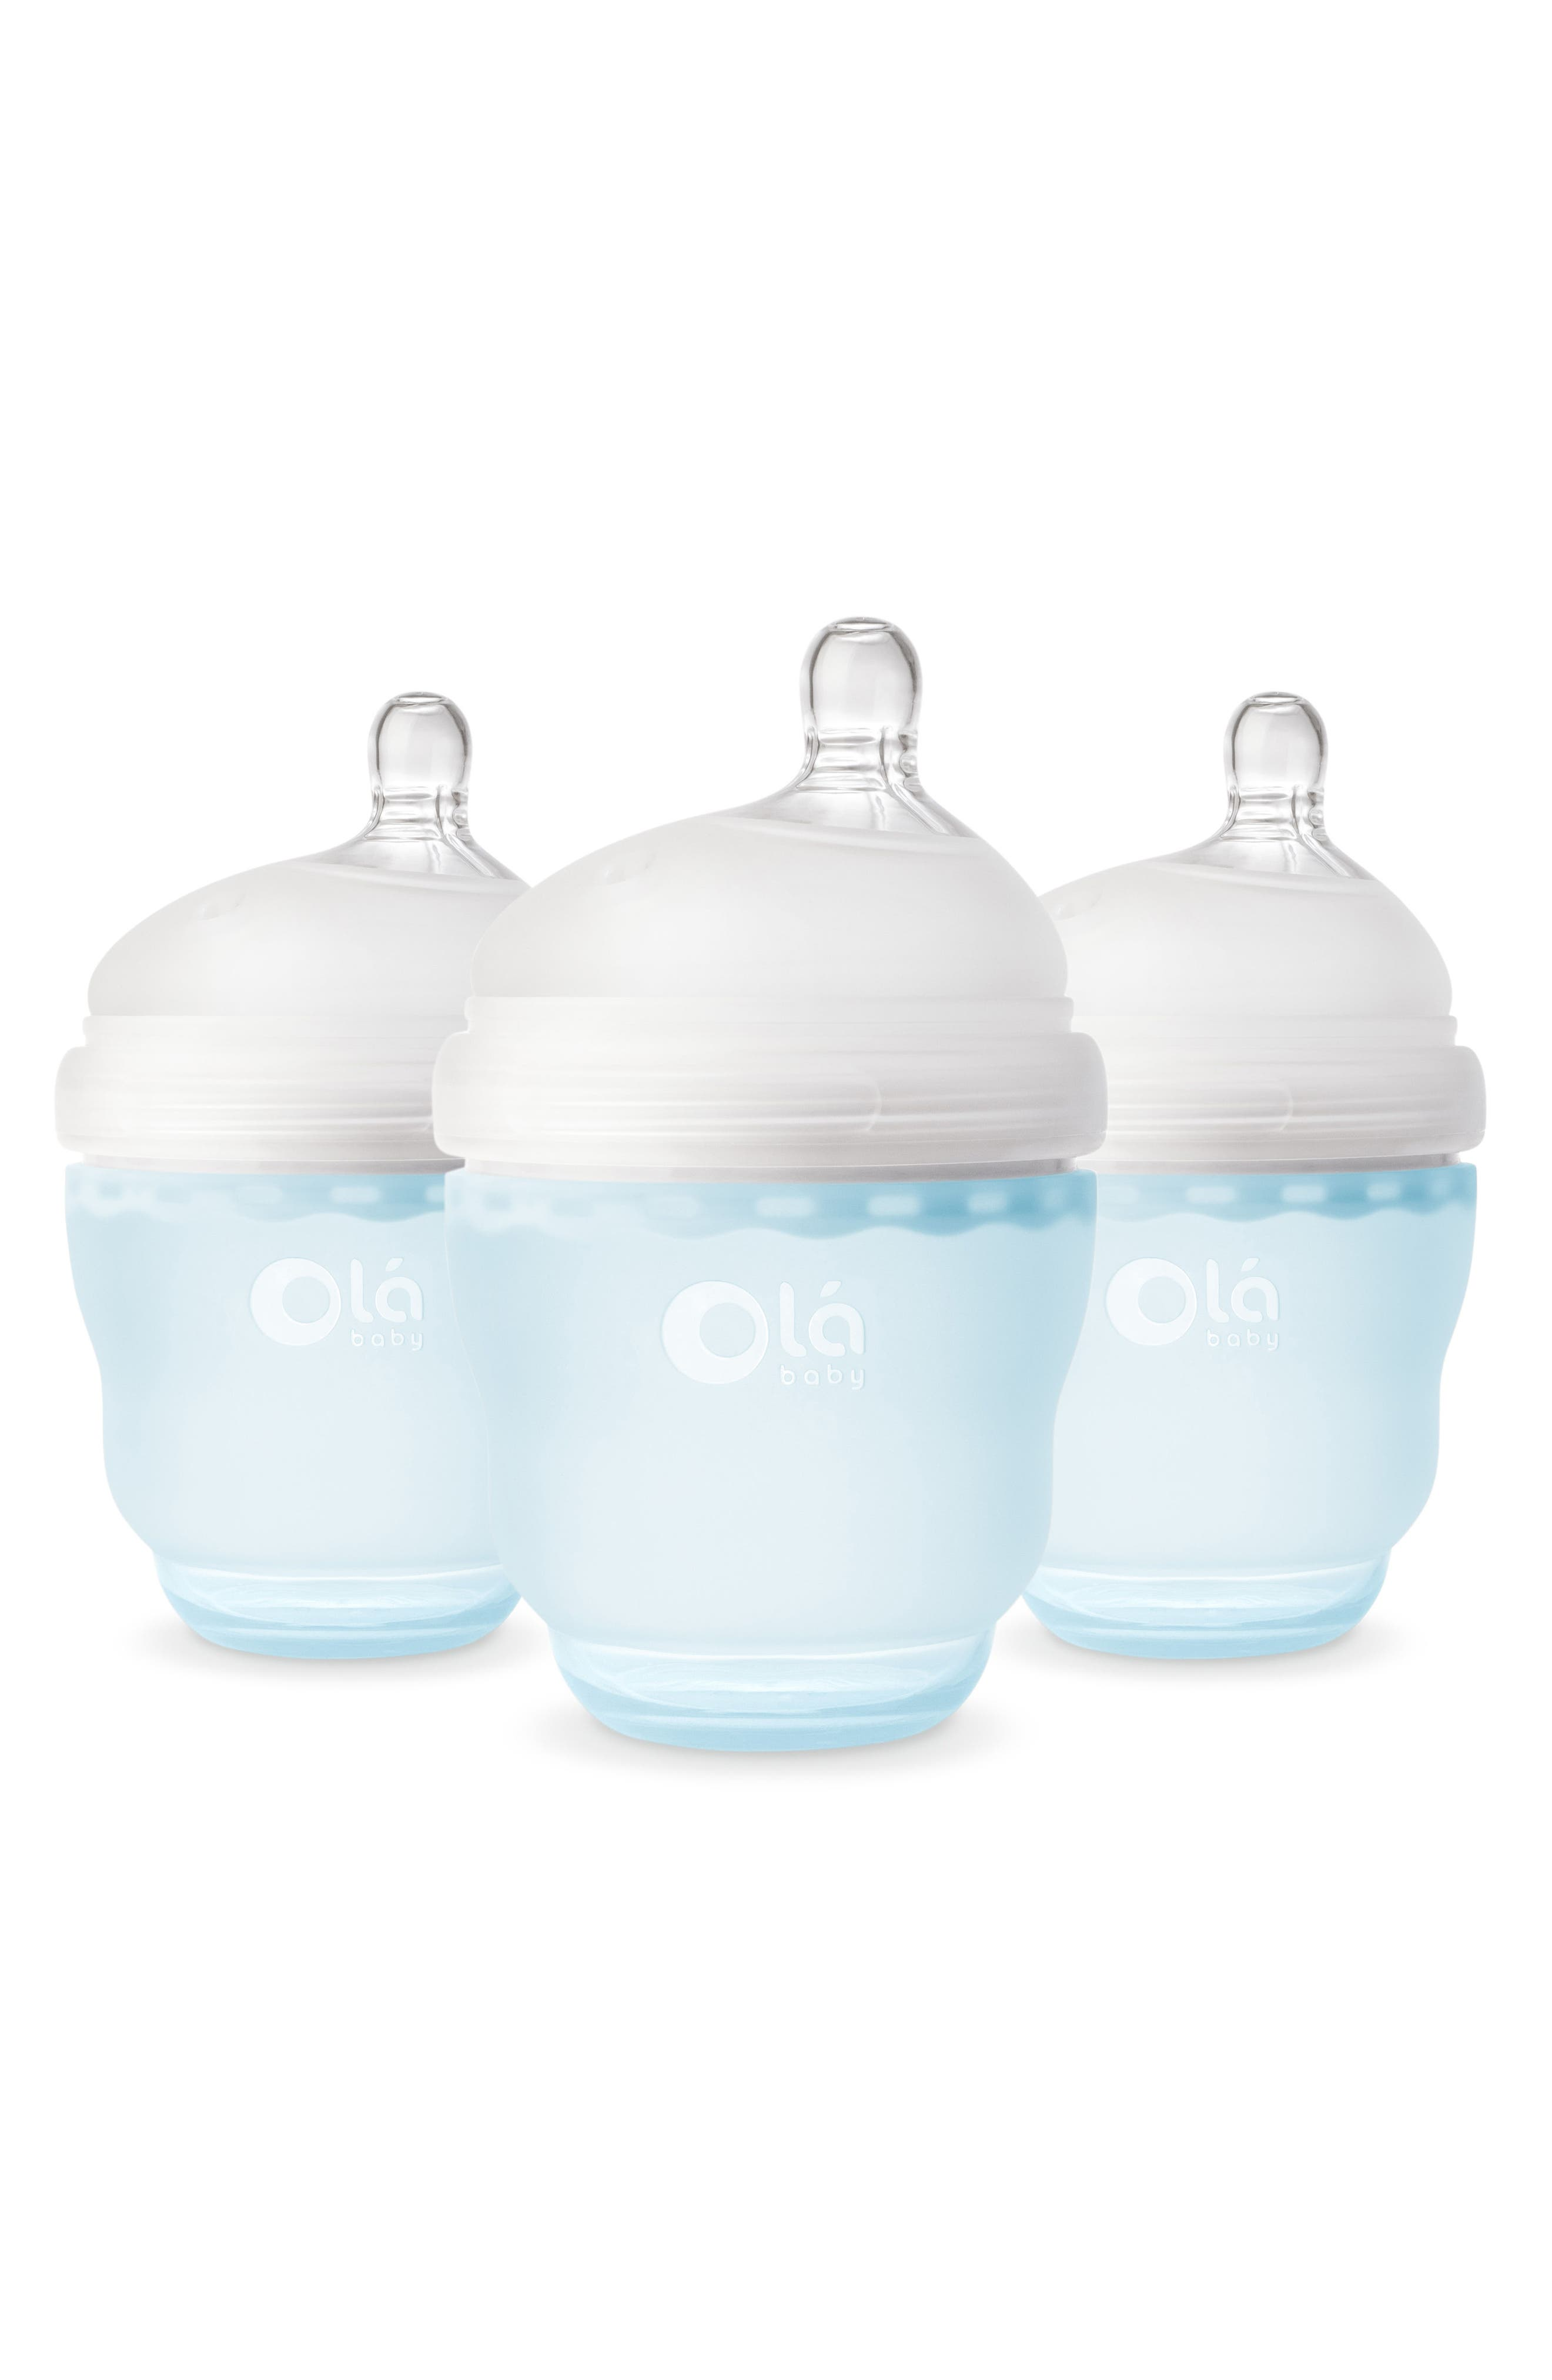 OLABABY 3-Pack GentleBottle 4-Ounce Baby Bottles, Main, color, SKY